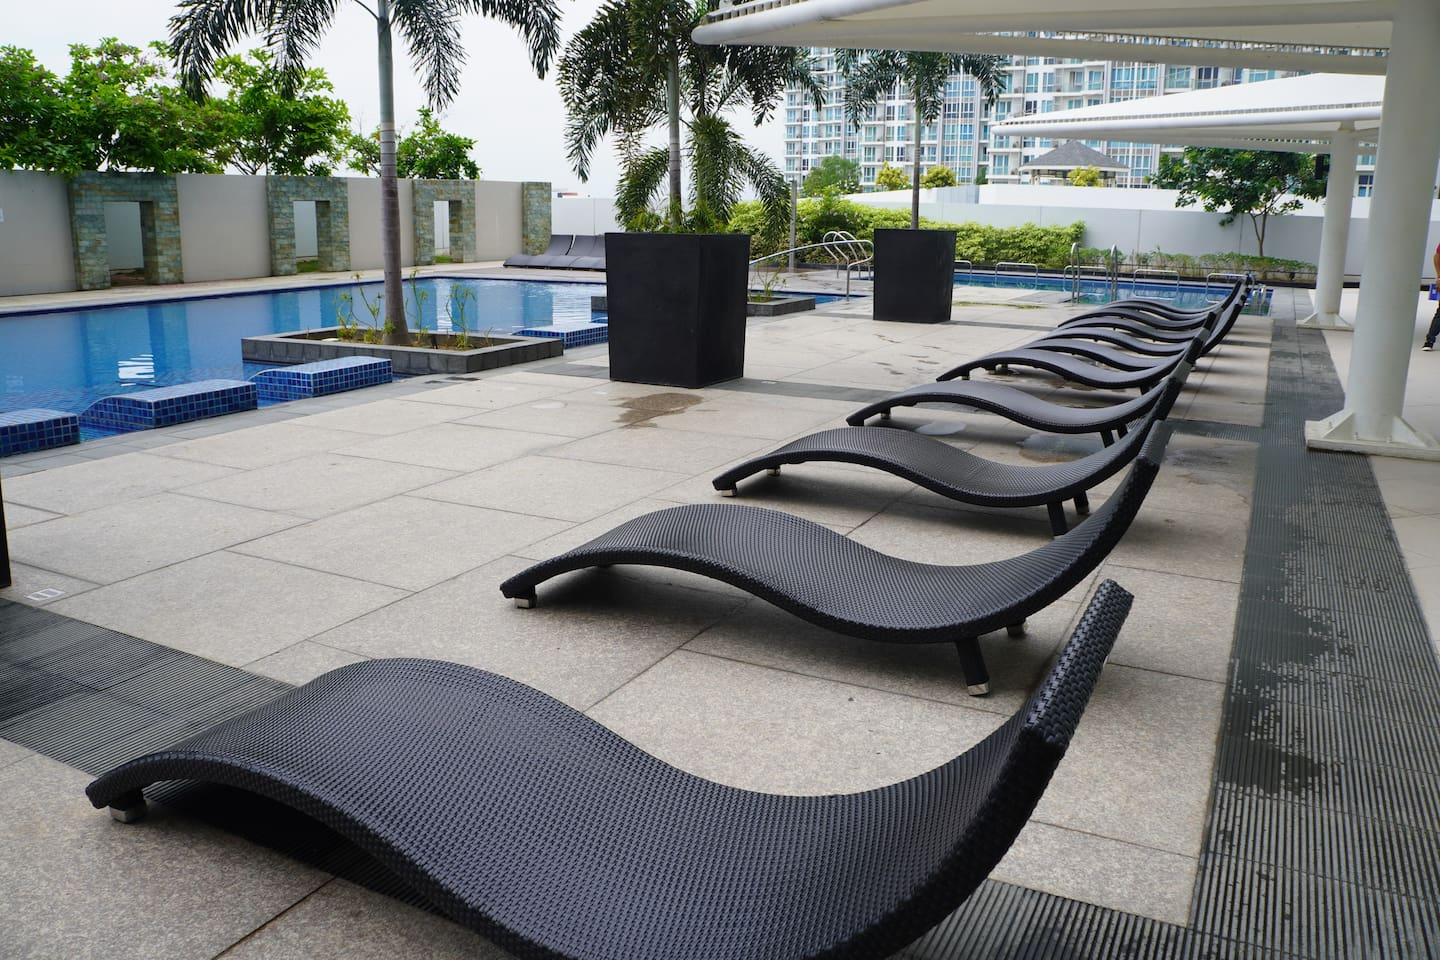 Access to swimming pool is free of charge for 2 guests. They may ask a small fee for extra guests. The swimming pool opens 8 AM to 10 PM. It is closed on Mondays for maintenance.